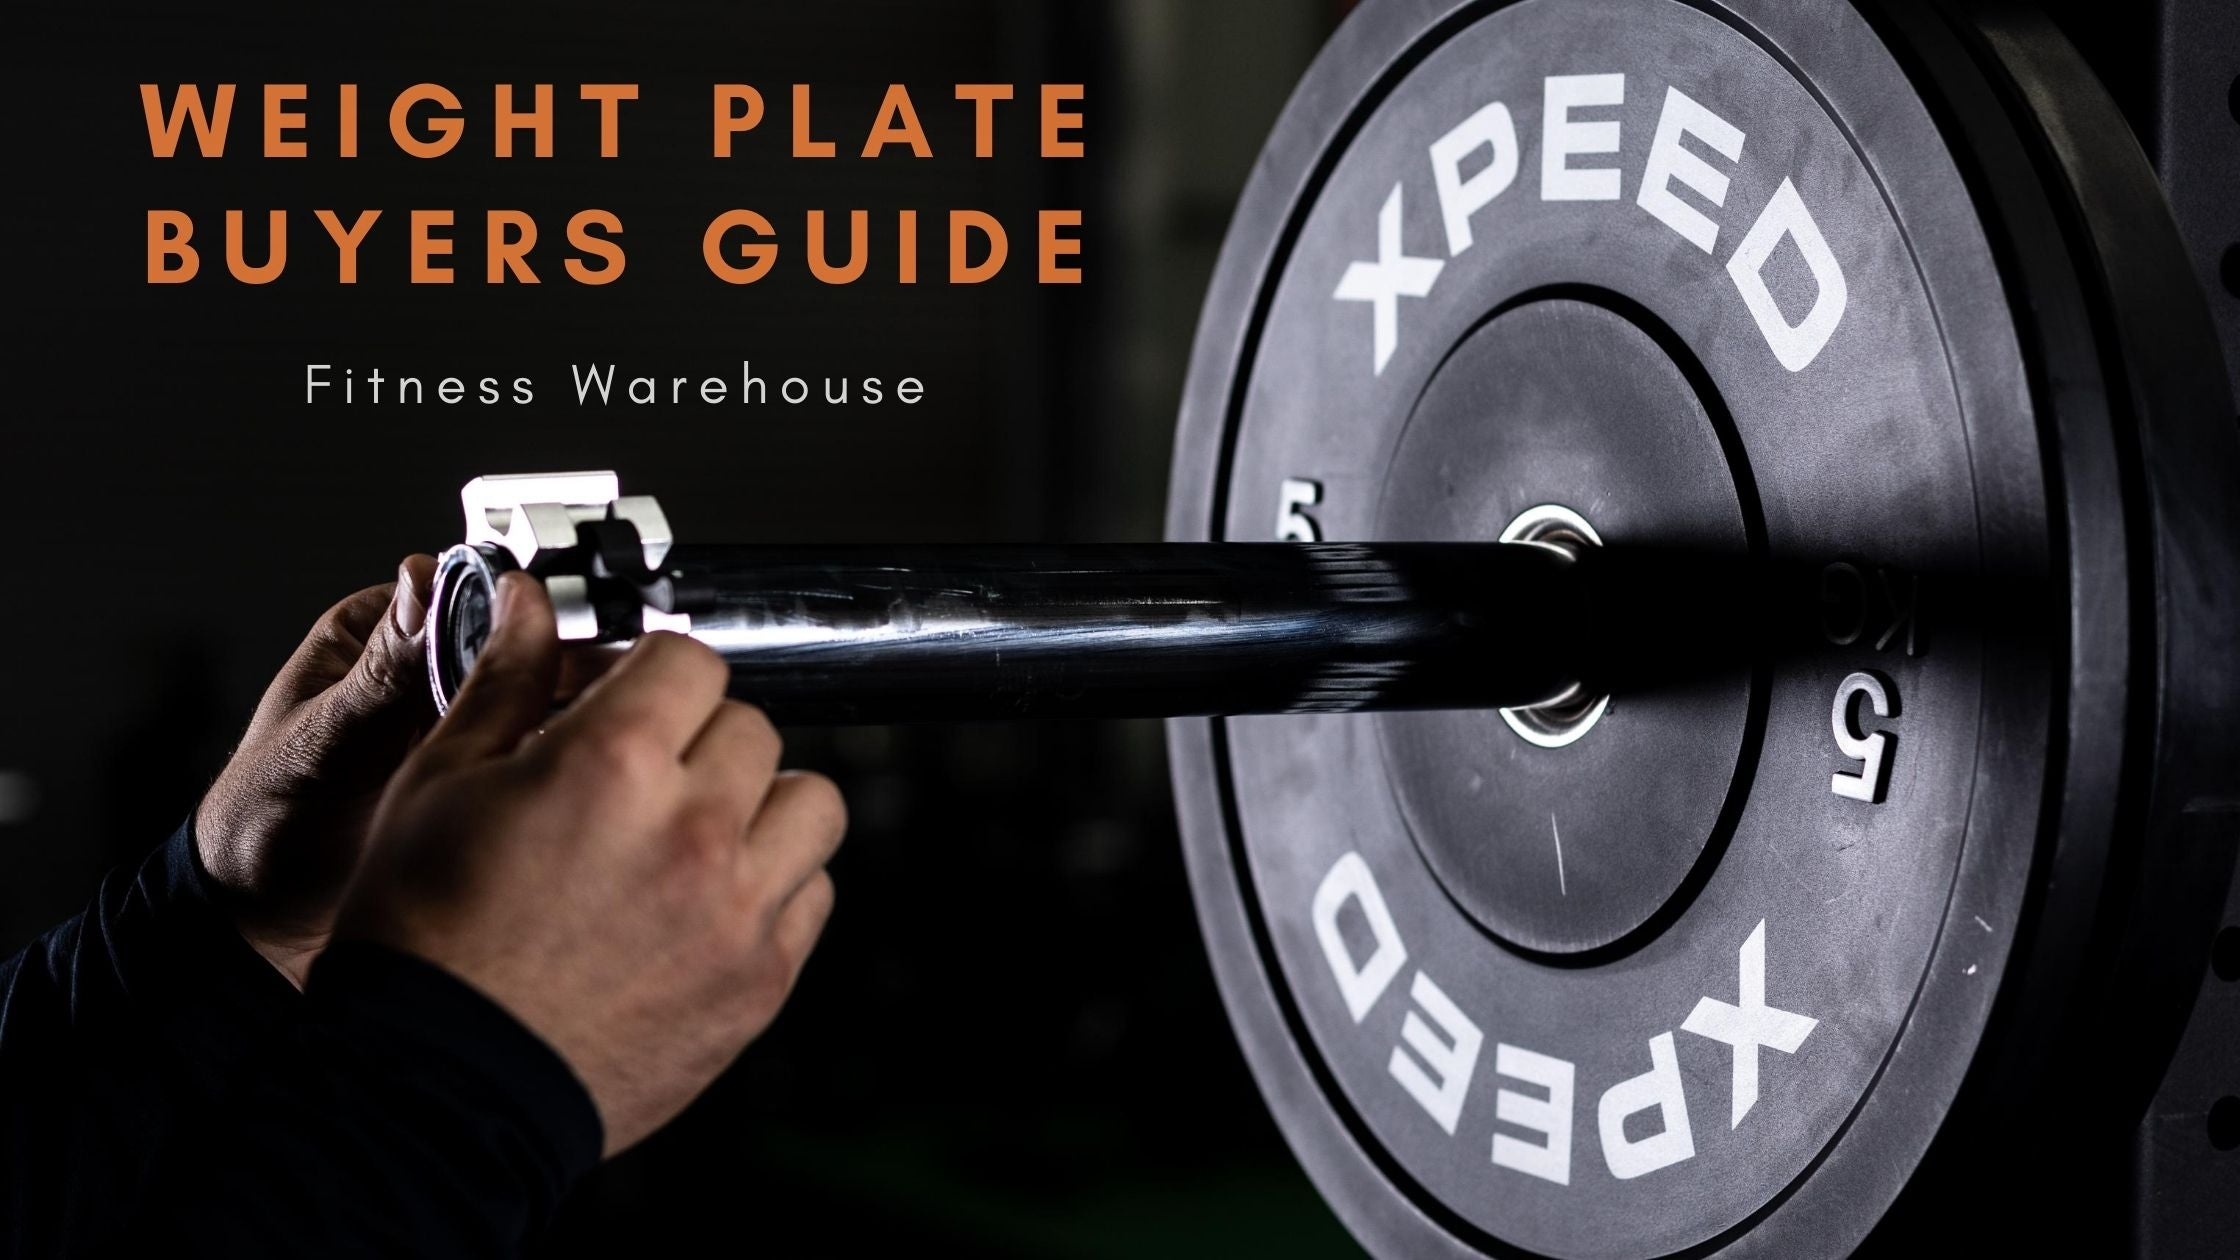 Looking for weight plates? This is what you need to know!